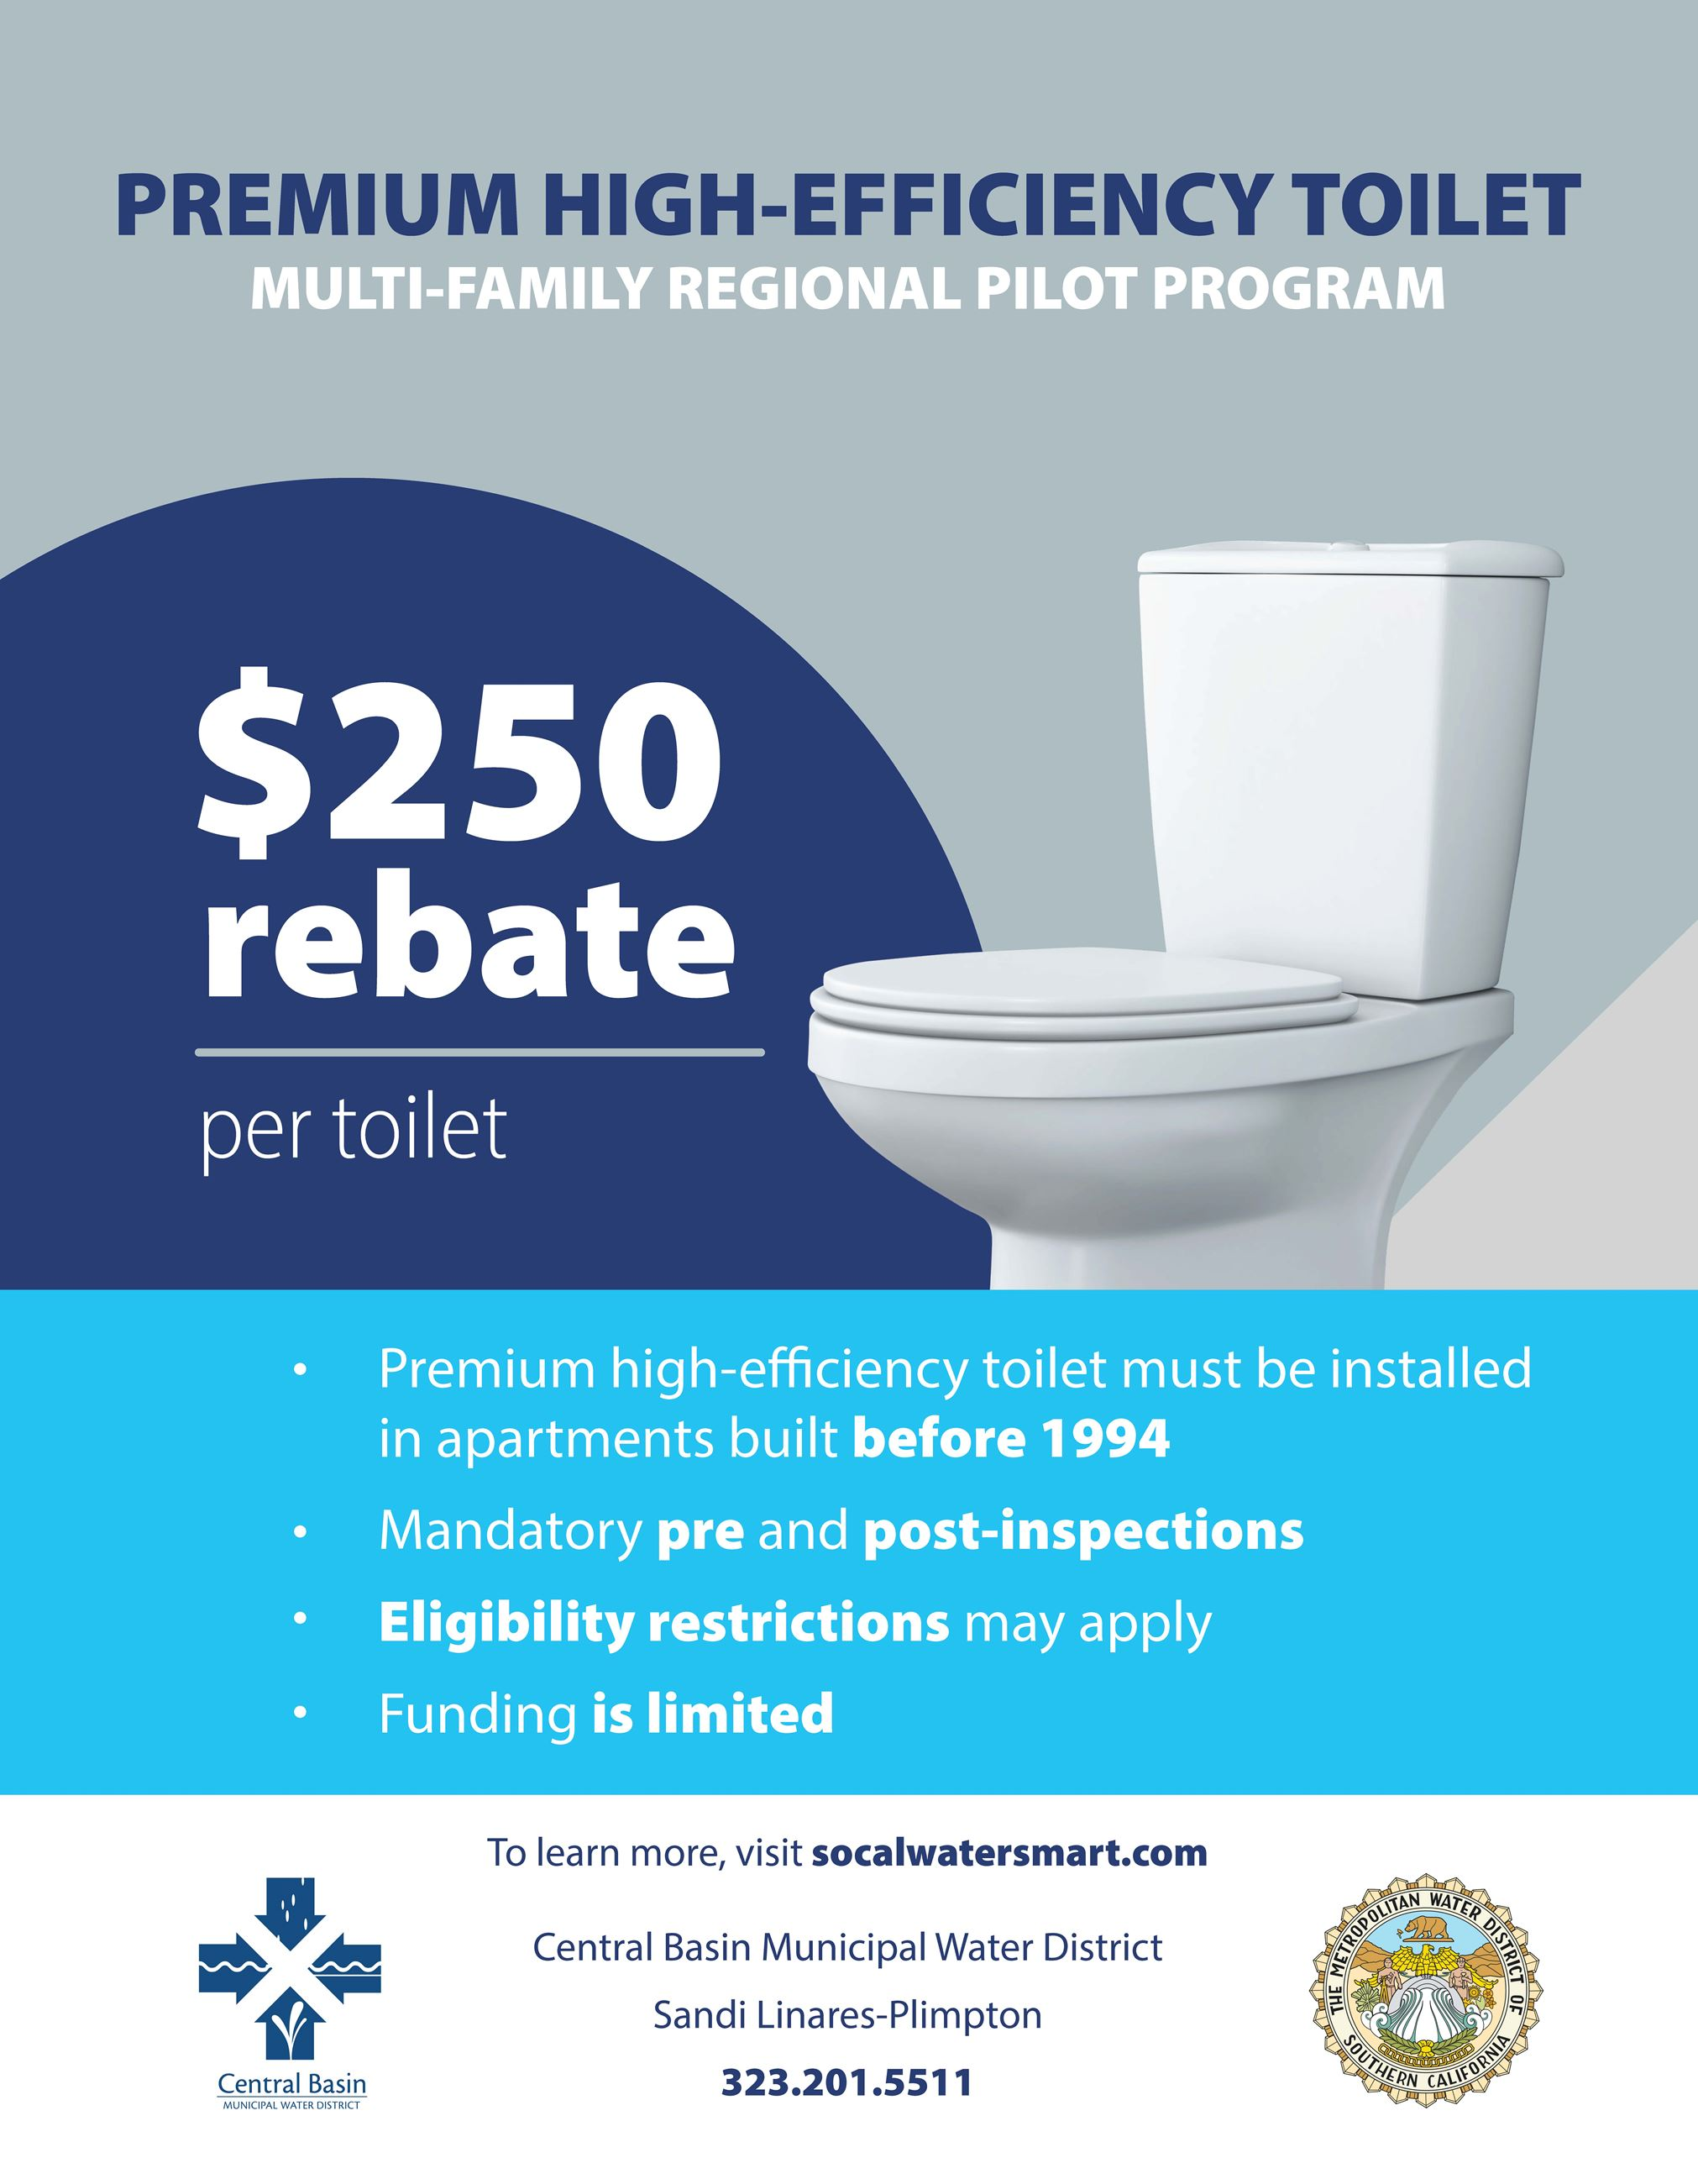 Premium High-Efficiency Toilet Multi-Family Regional Pilot Program